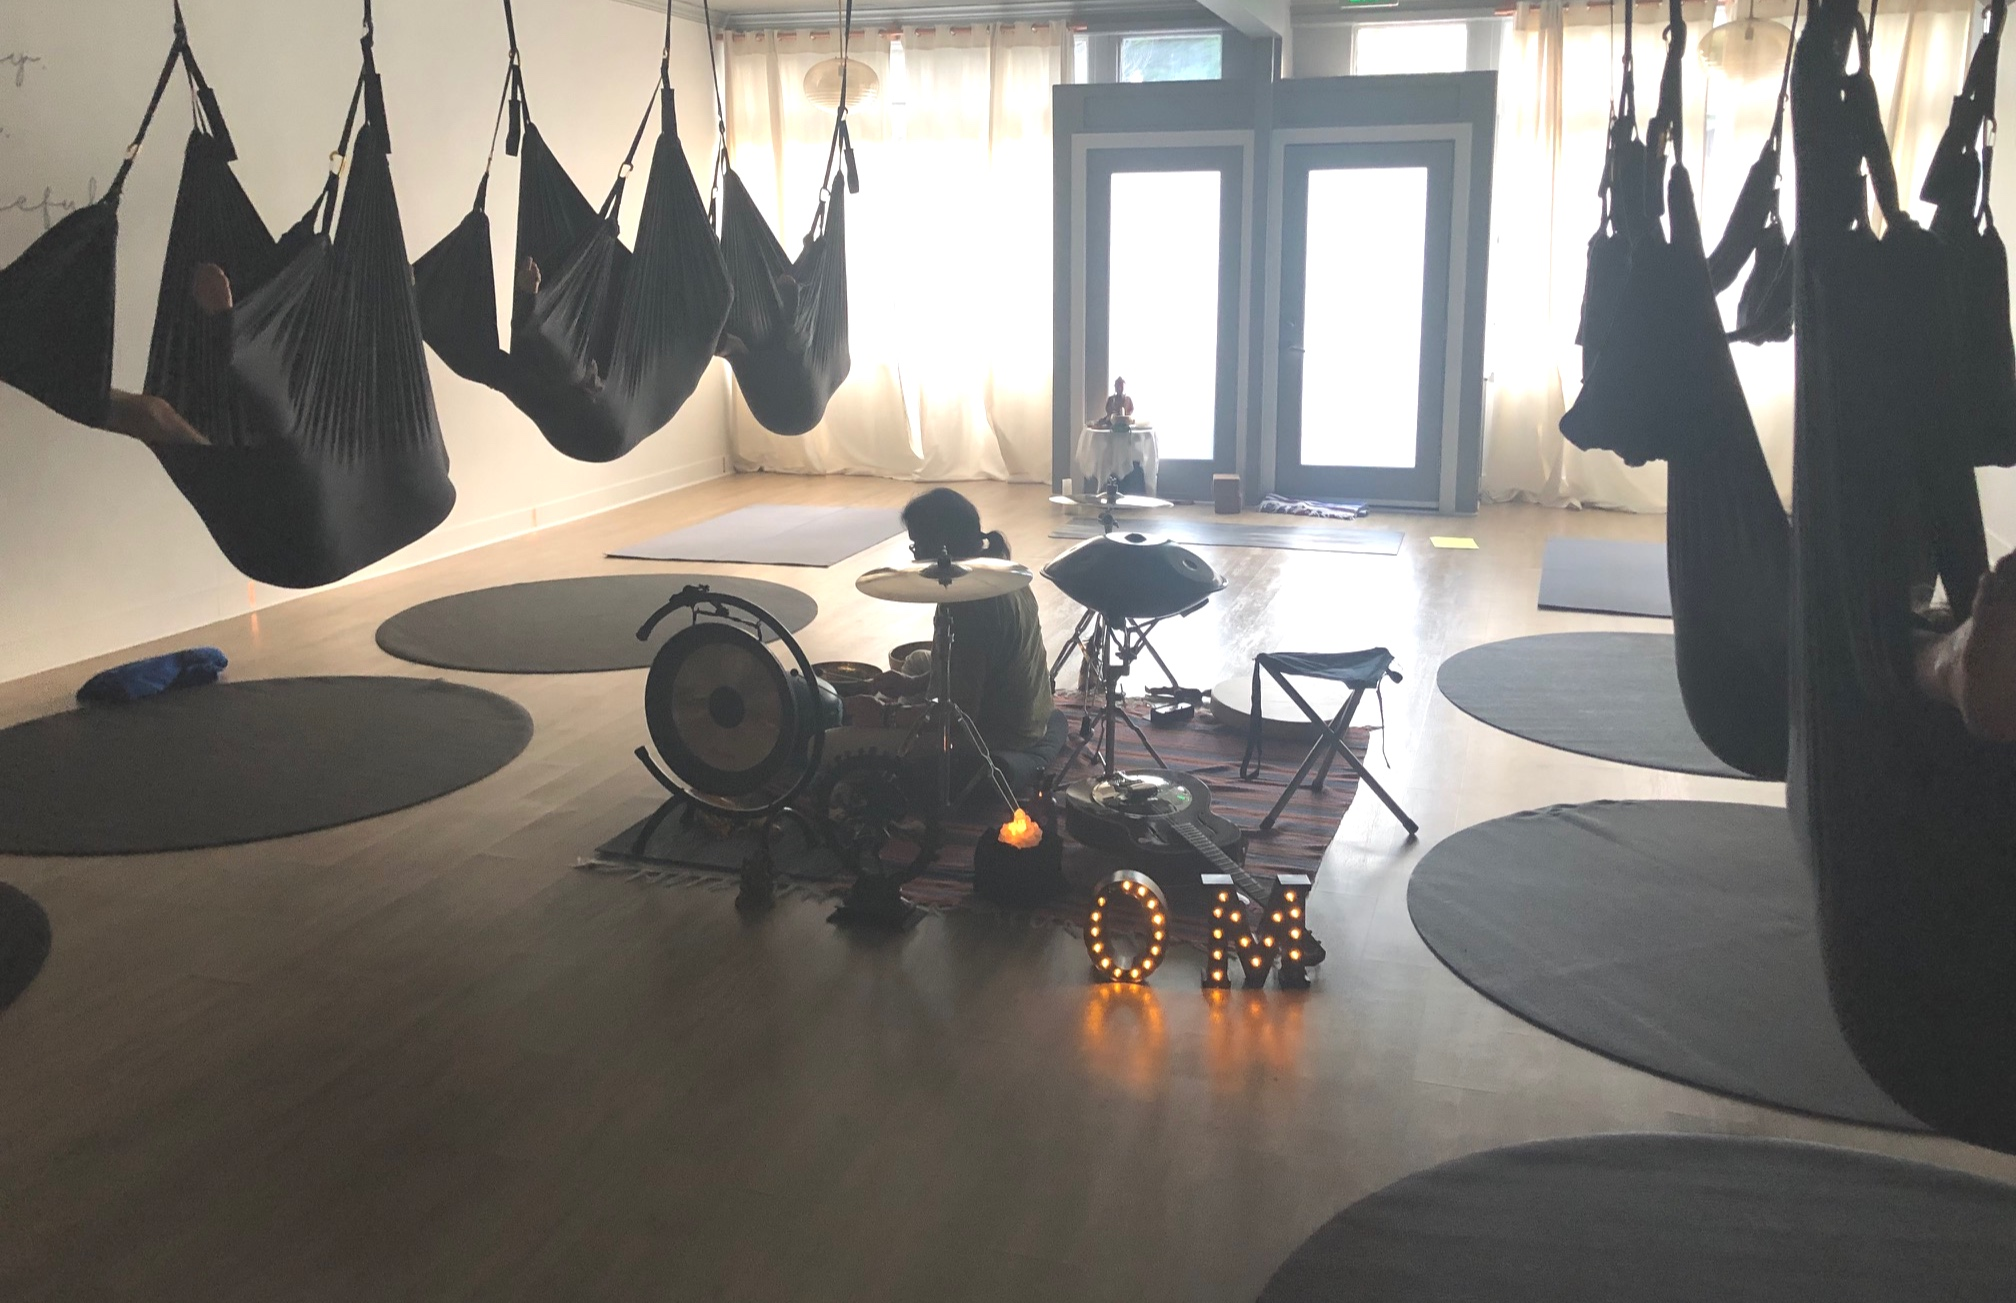 aerial swing, sound healing, michael padilla, aerial yoga, relaxation, meditation